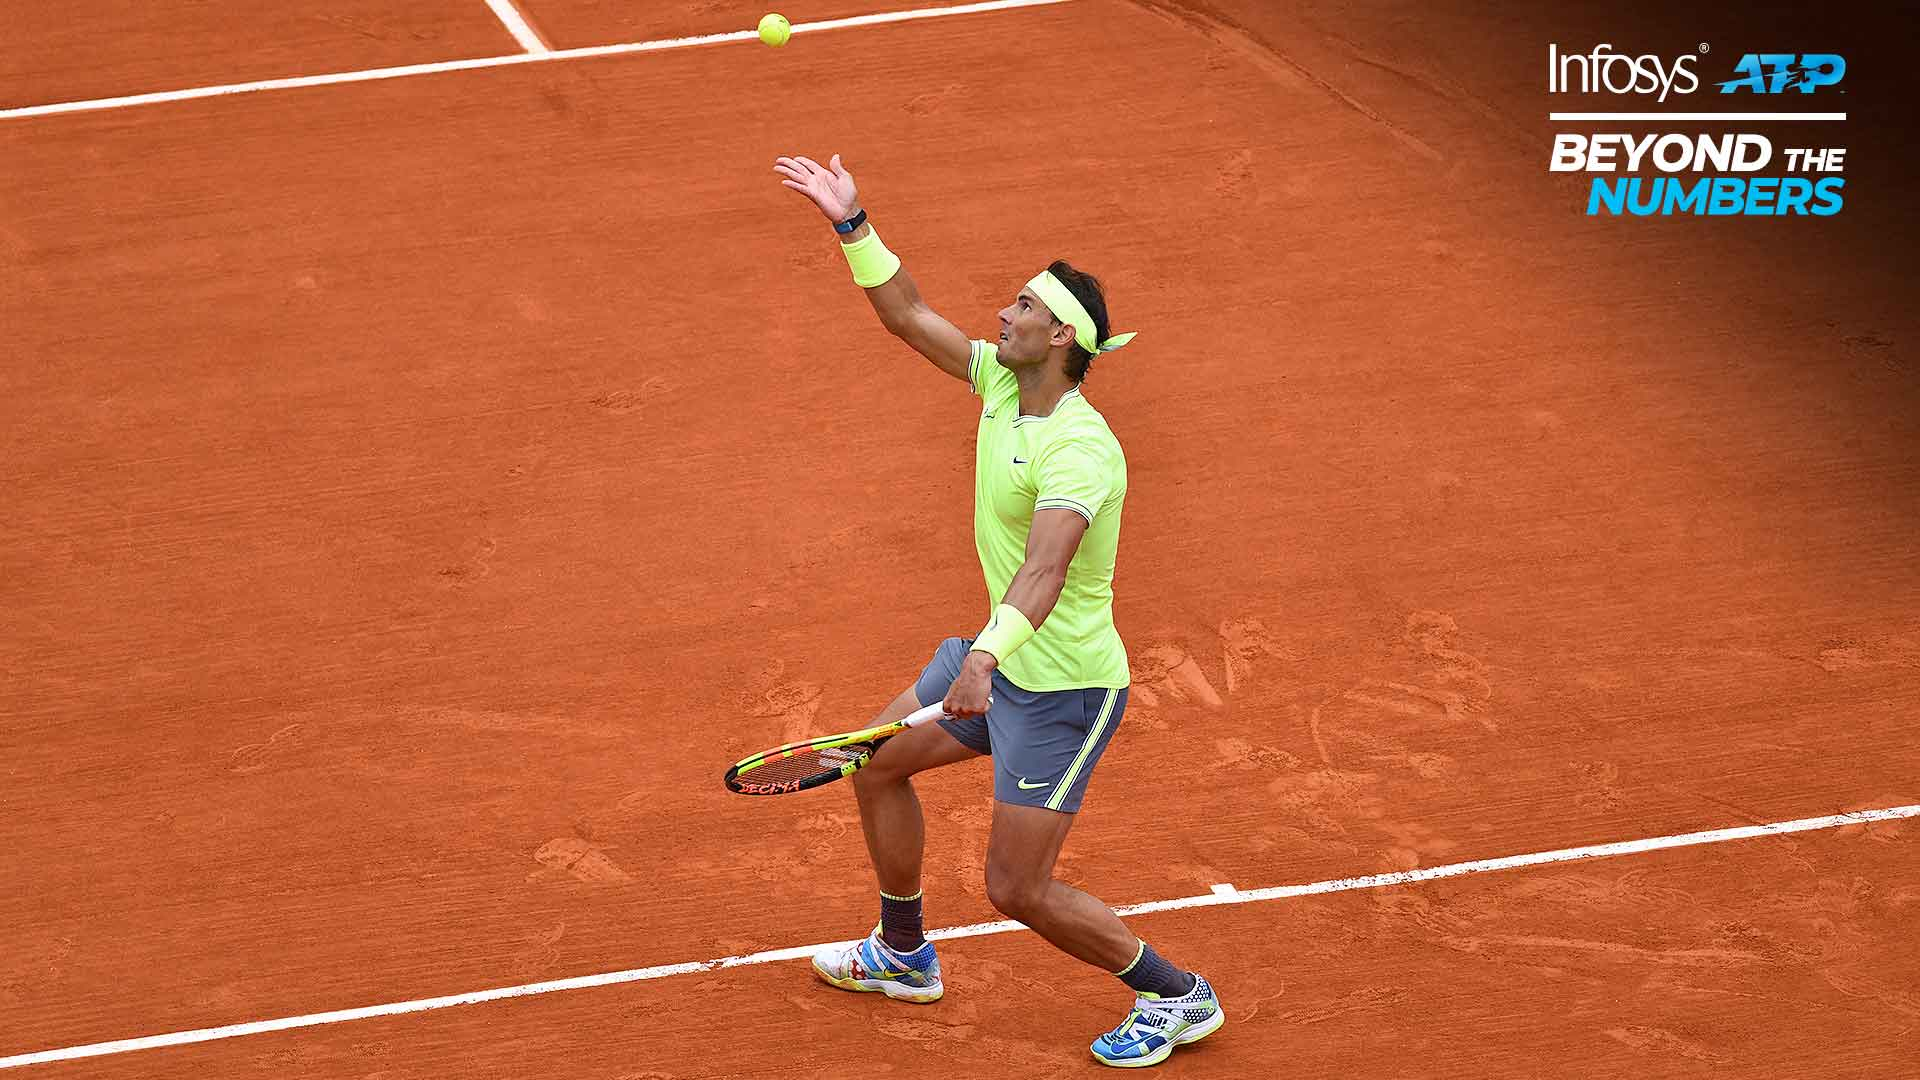 Rafael Nadal is the best at second serves